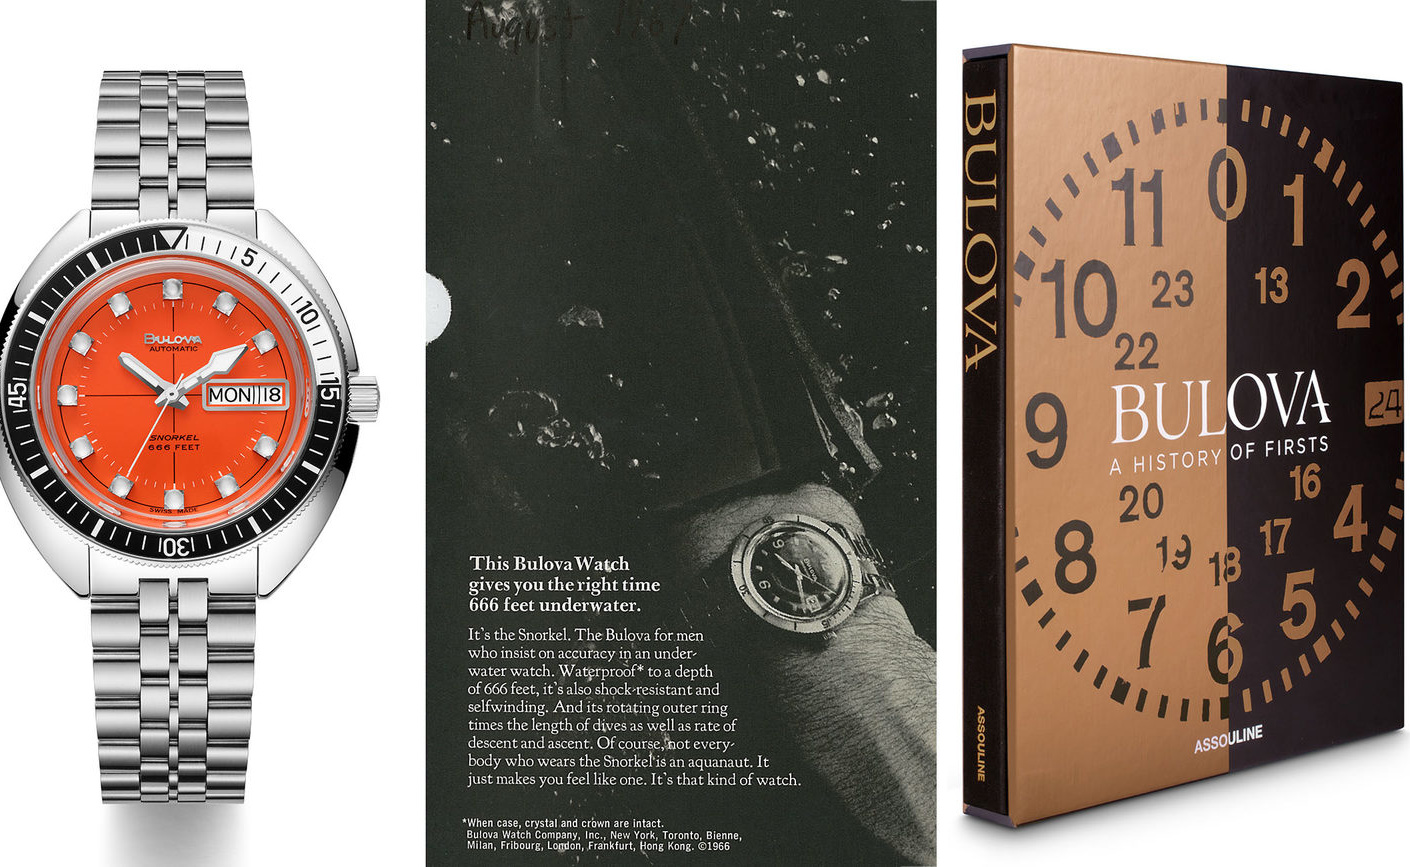 """Vintage Tudor Watches >> 'BULOVA: A History of Firsts' Exclusive Excerpt – The Bulova 666 """"Devil Diver"""" 